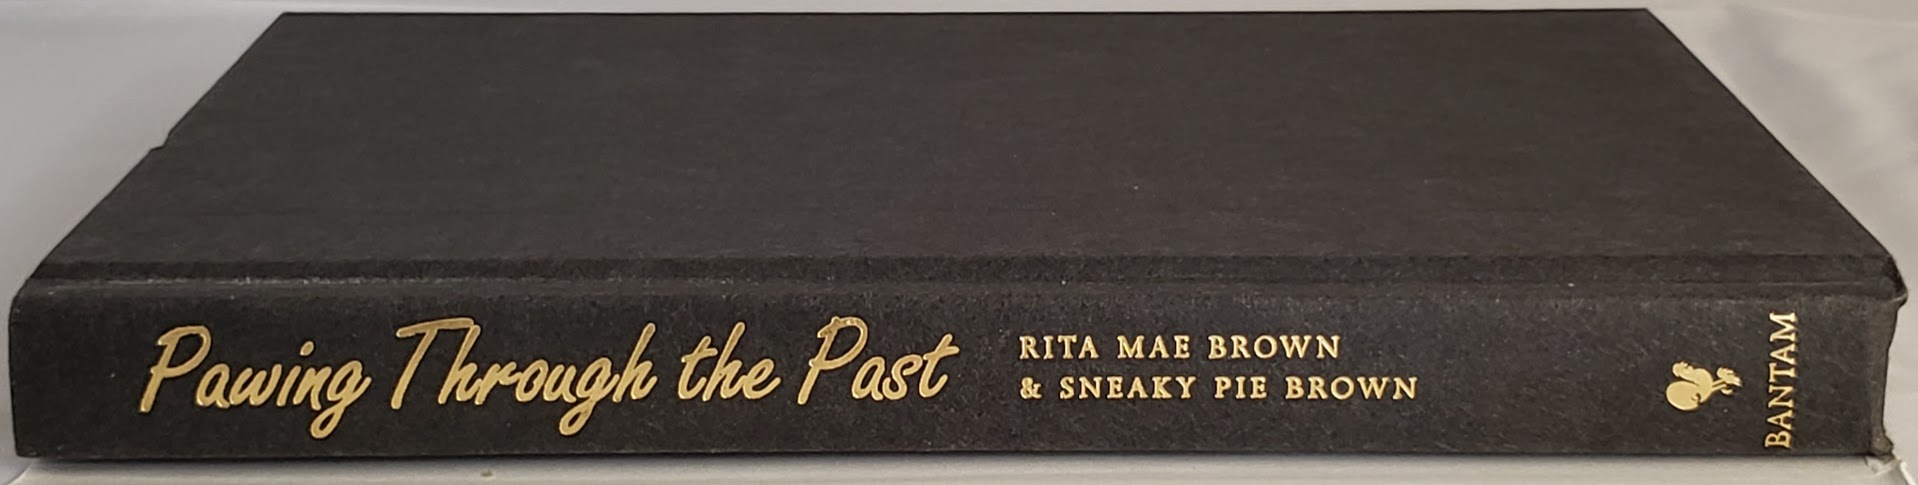 Pawing Through the Past: Rita Mae Brown and Sneaky Pie Brown